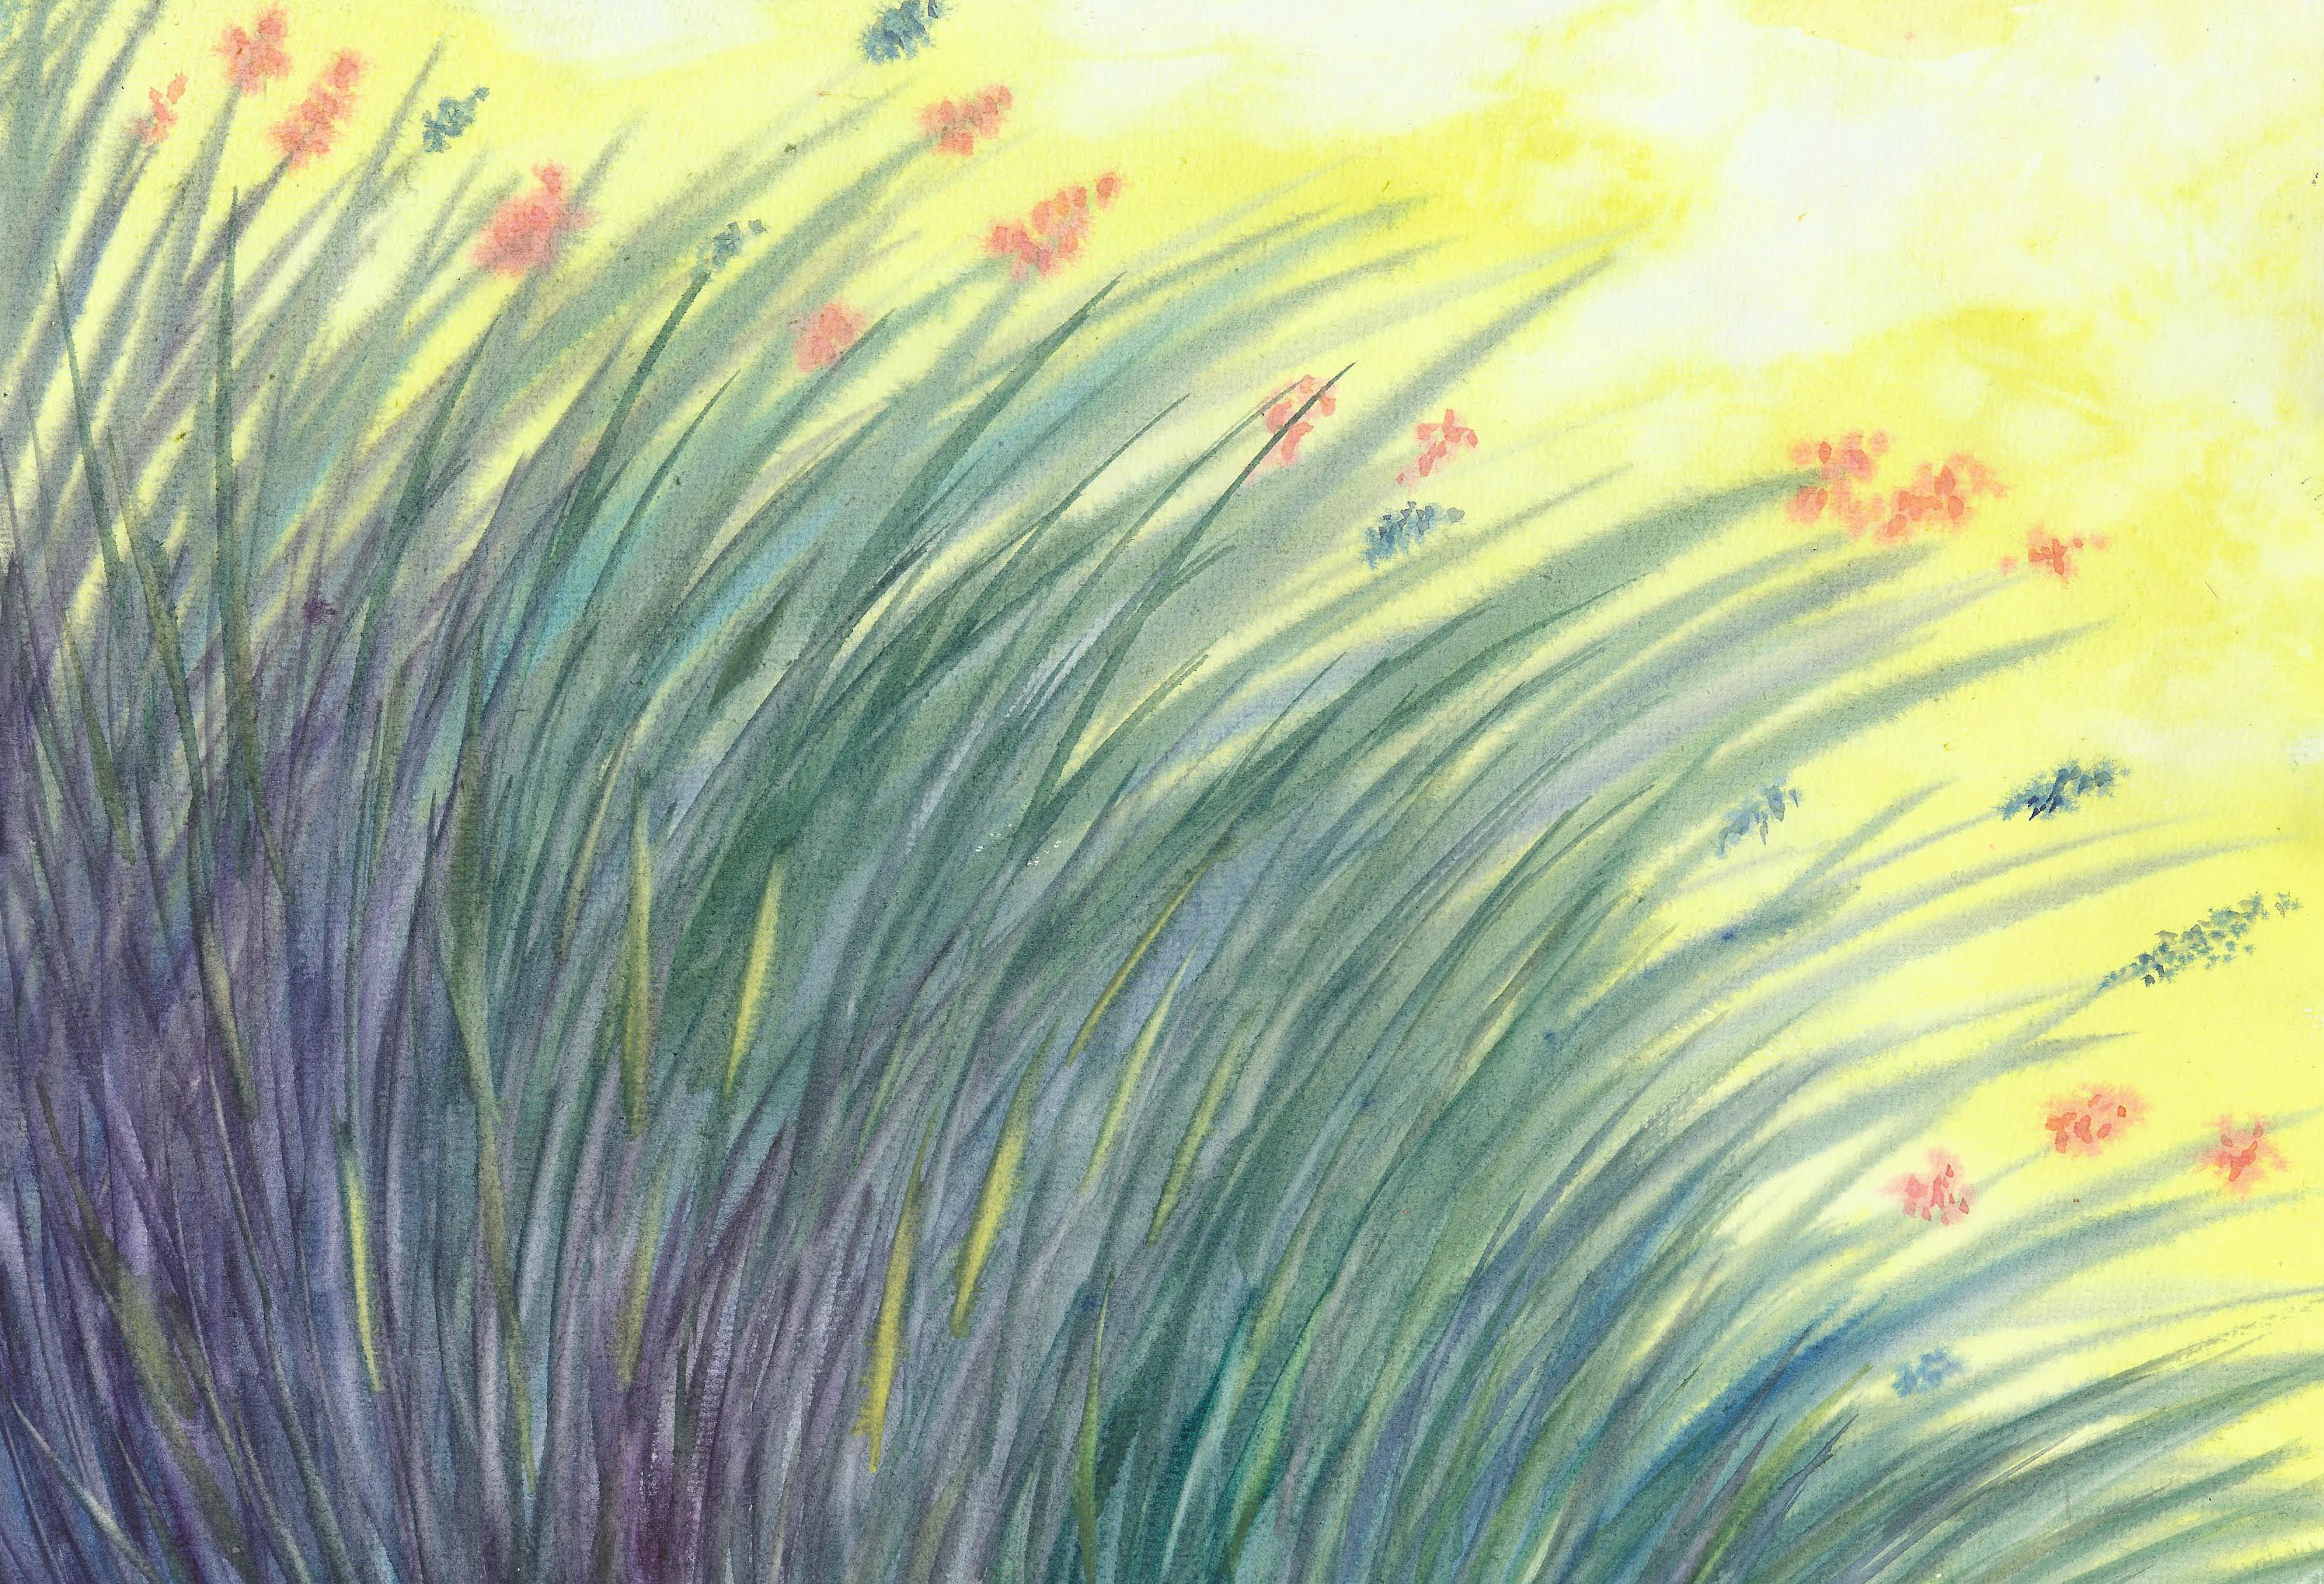 Wildflowers - Watercolor - 12 X 17 - Sold - Print Available